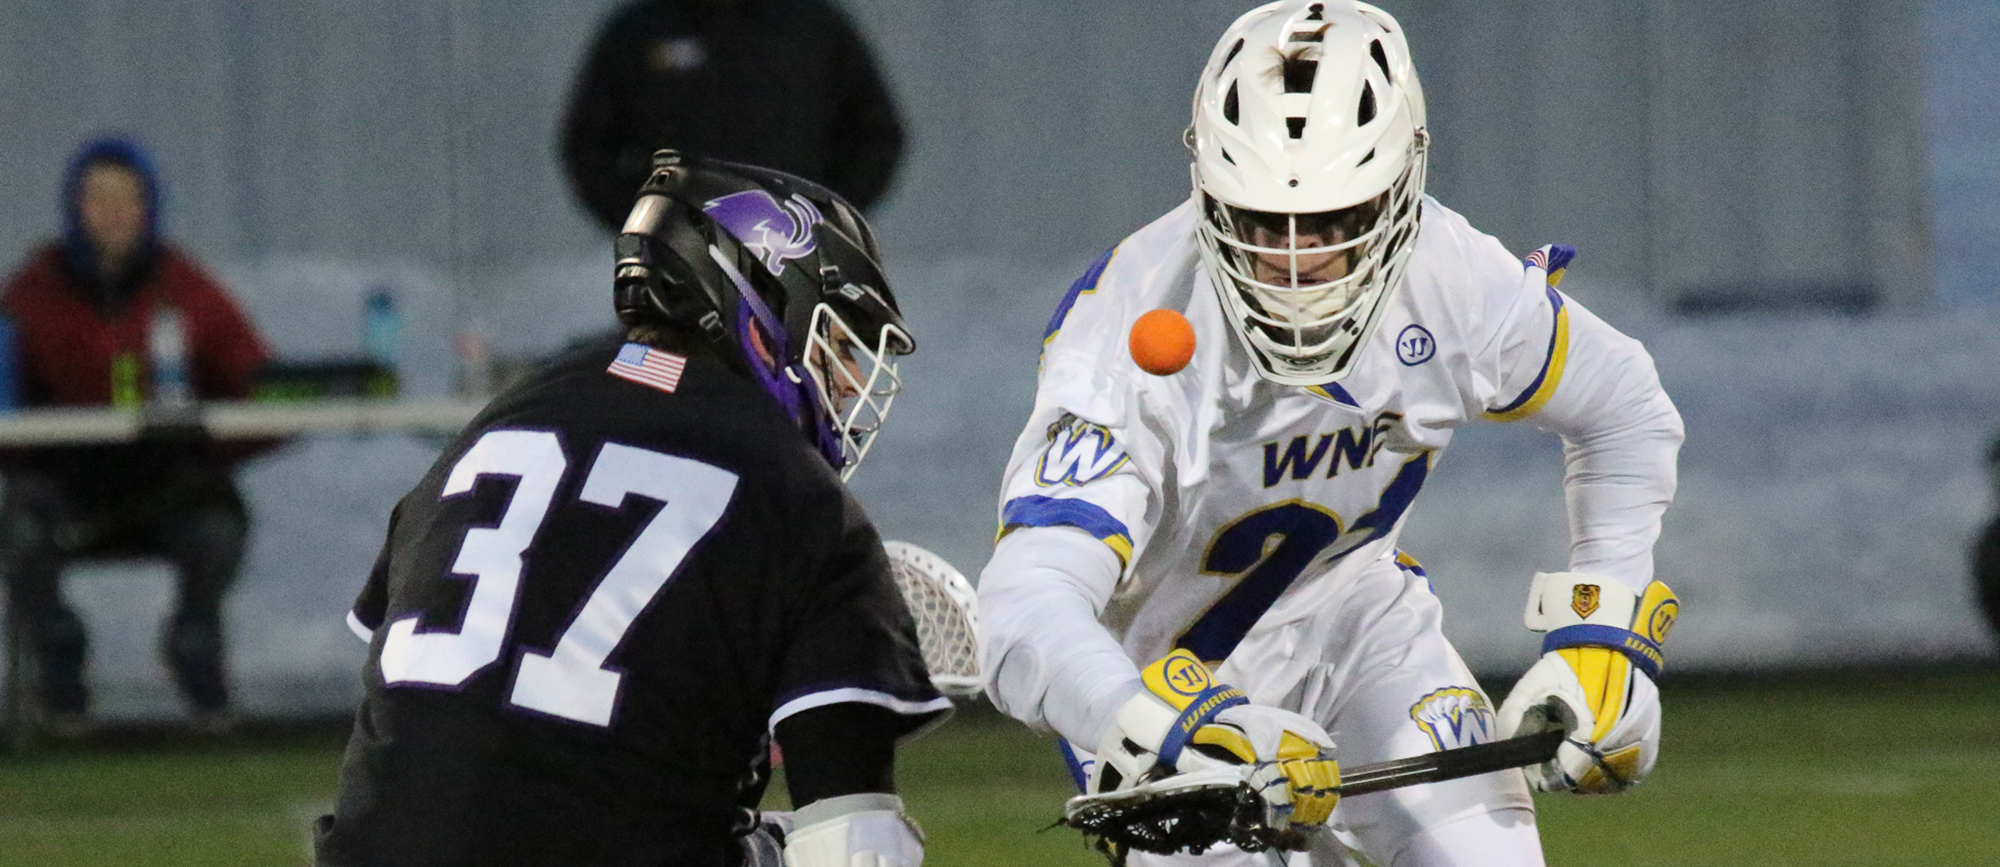 Hunter Cocks was successful on 19-of-30 faceoffs in Western New England's 20-8 loss to Bates on Tuesday night. (Photo by Andrew Shilling)